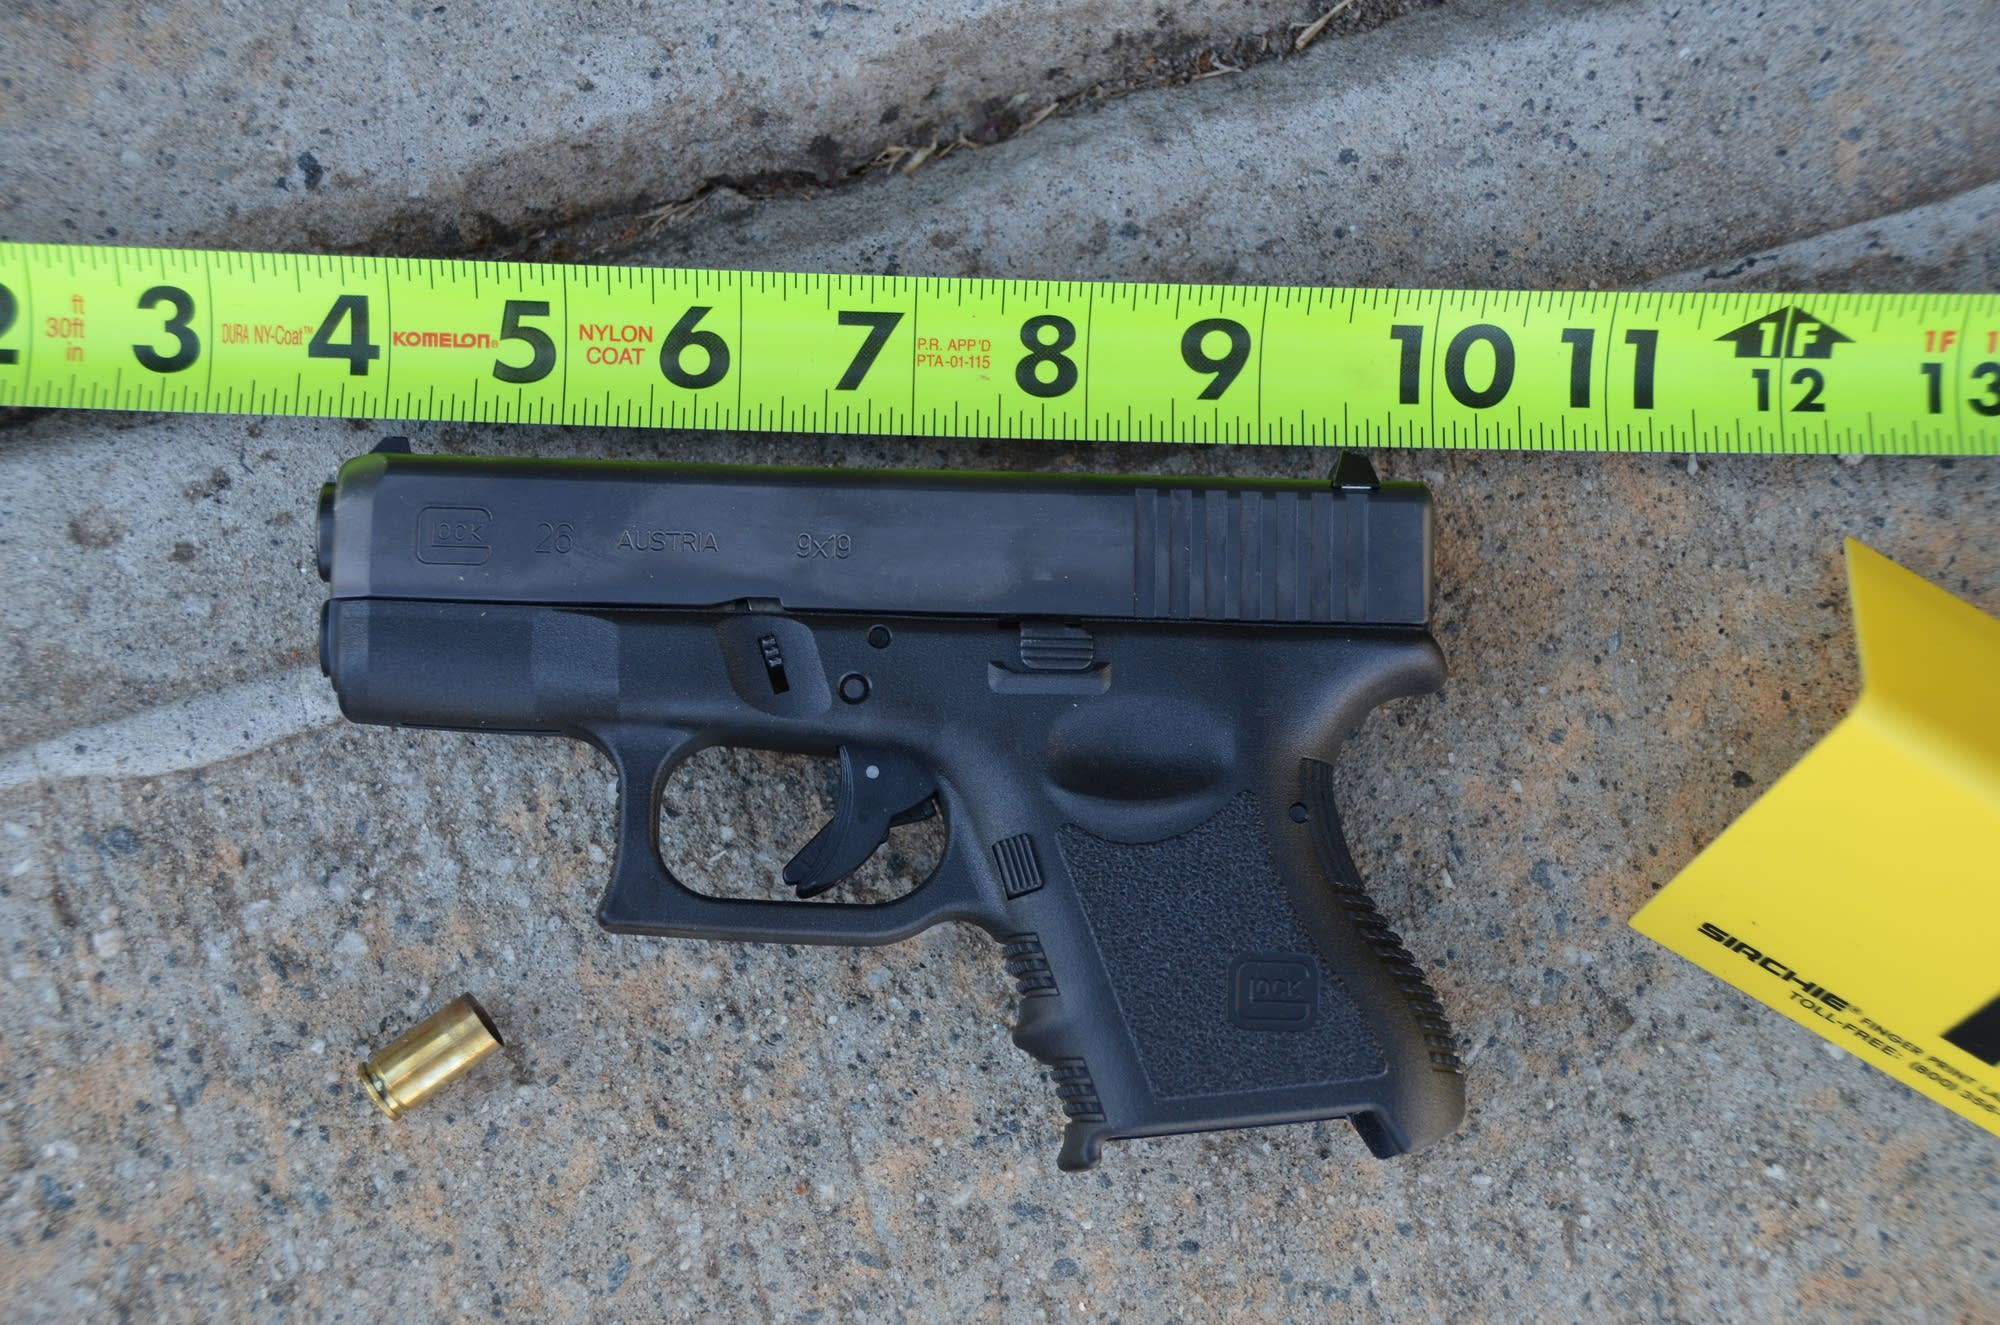 A gun involved in an accidental shooting